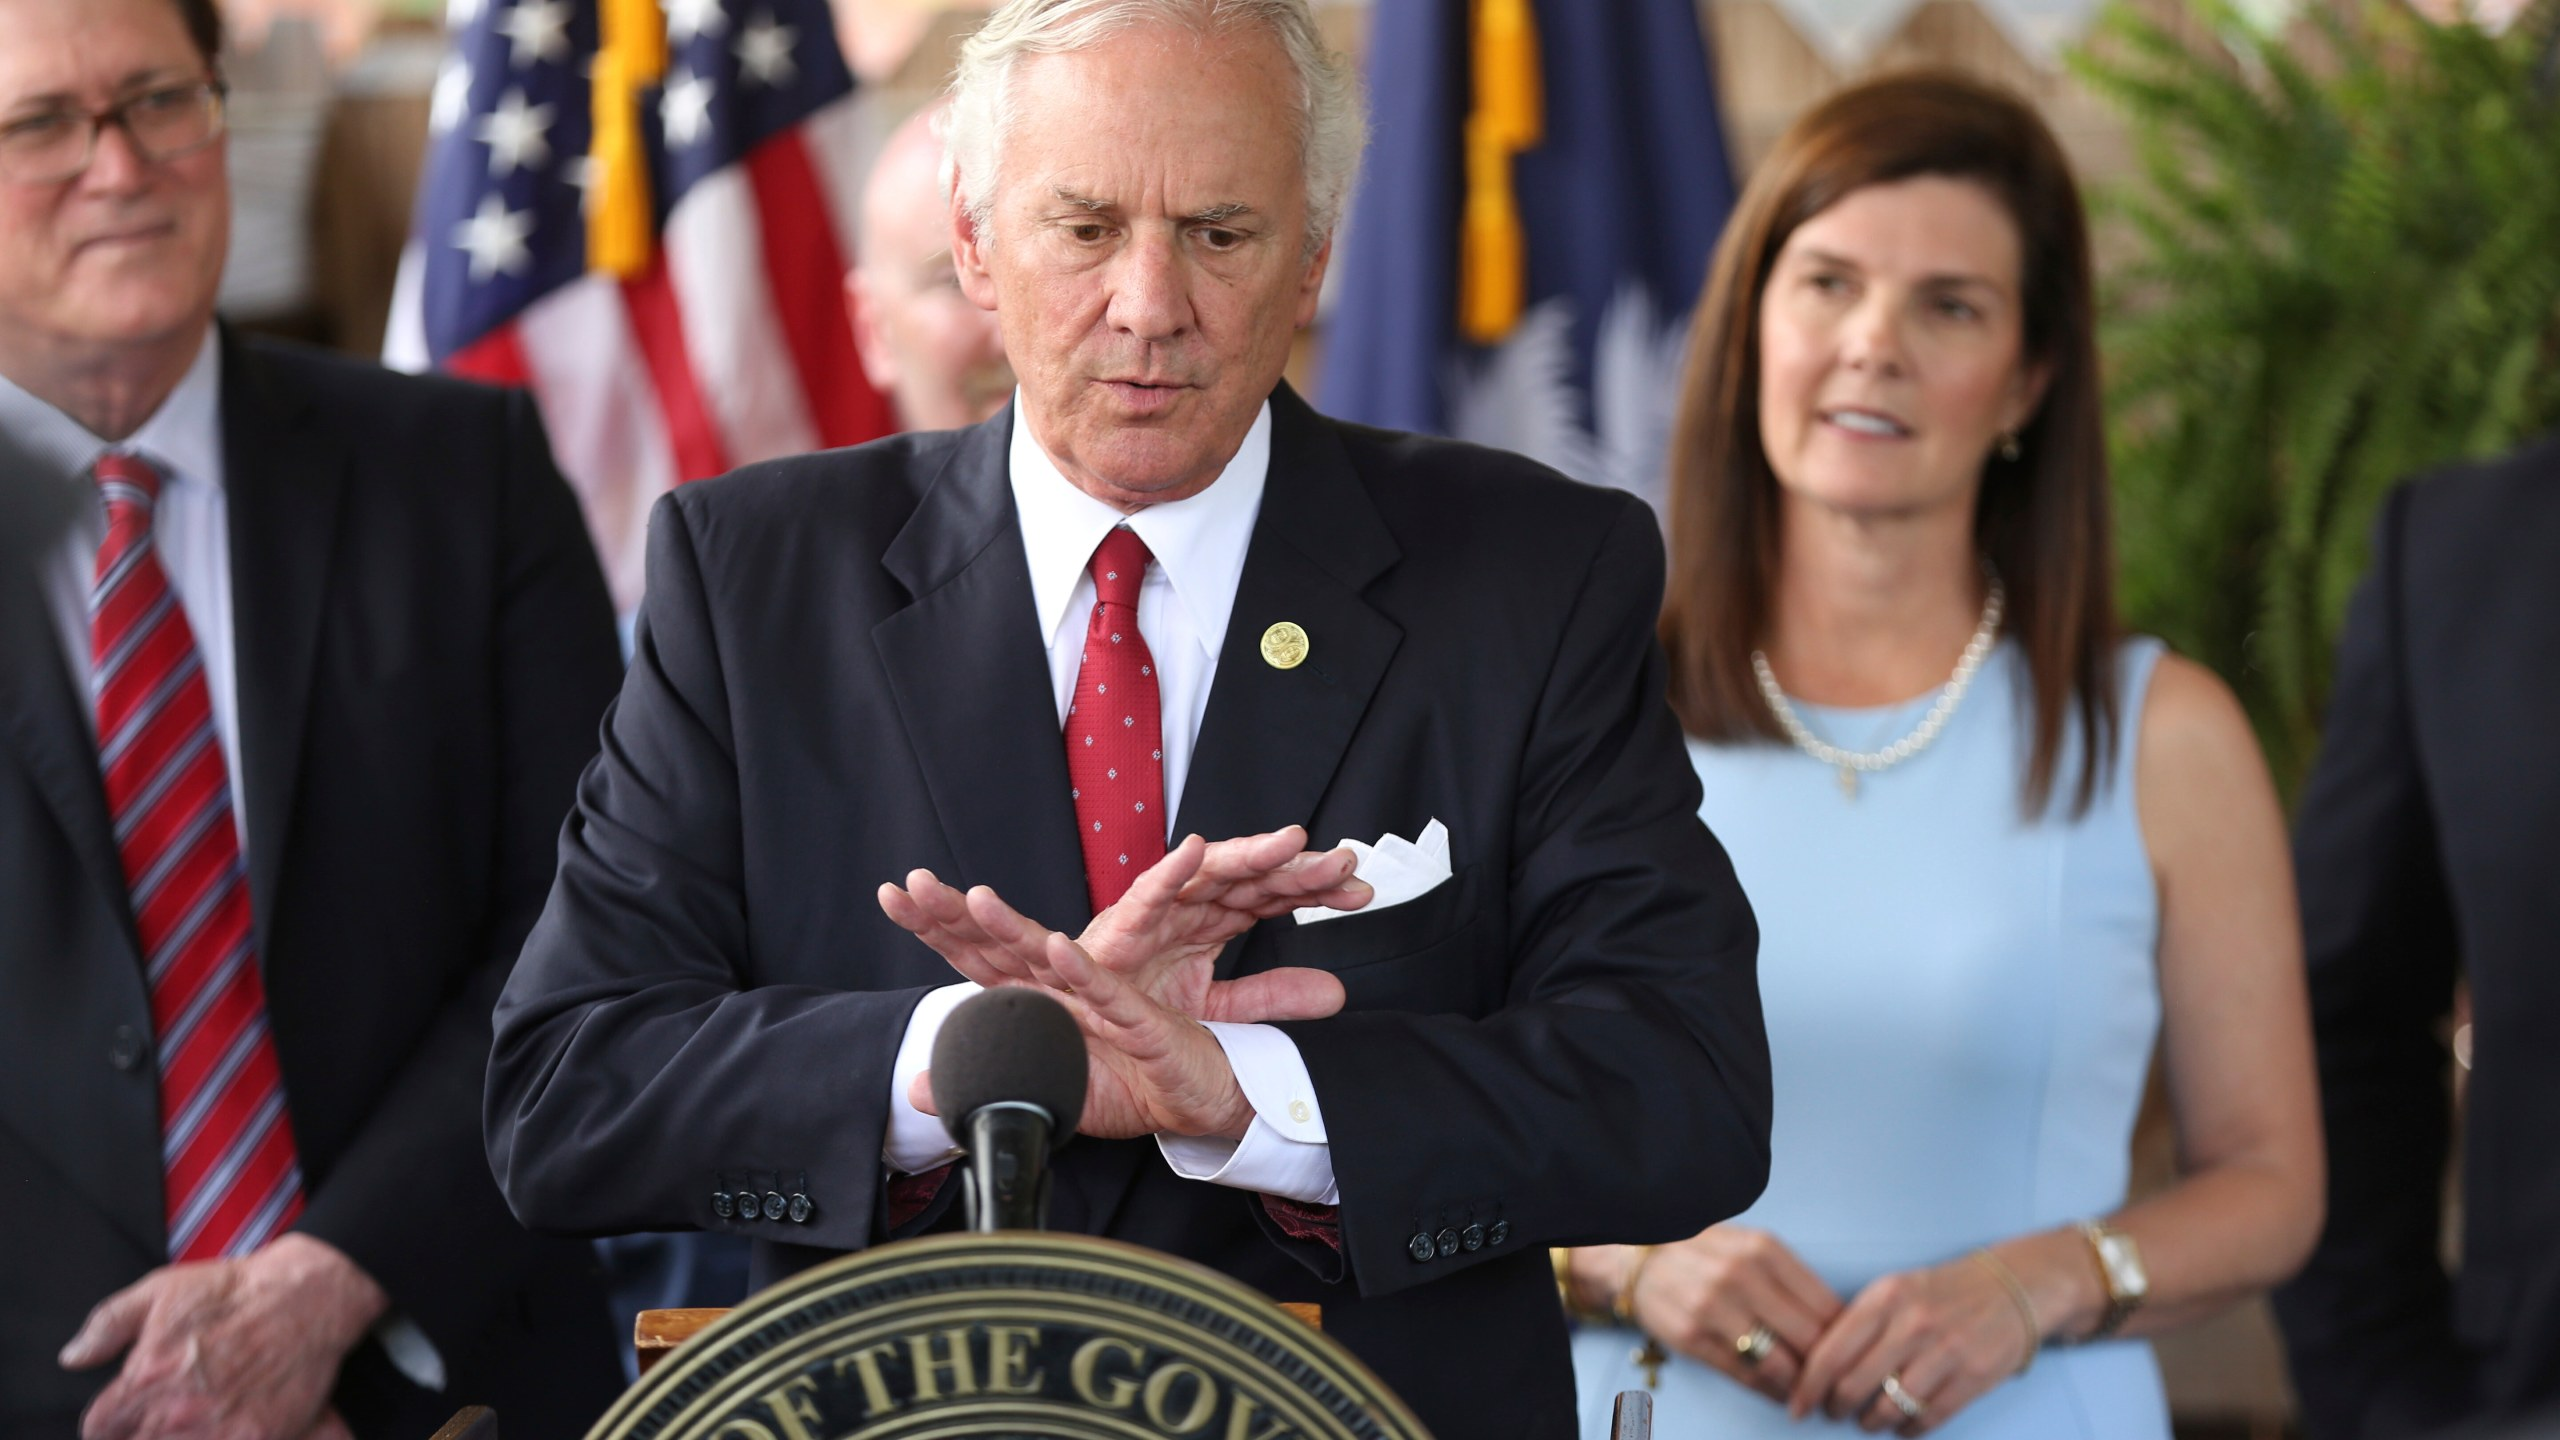 FILE - In this June 24, 2021, file photo, South Carolina Gov. Henry McMaster speaks during a ceremony to sign a bill preventing people from suing businesses over COVID-19 on Thursday, at Cafe Strudel in West Columbia, S.C. McMaster is one of several Republican state leaders opposing federal efforts to go door-to-door to urge people to get vaccinated against COVID-19. (AP Photo/Jeffrey Collins, File)